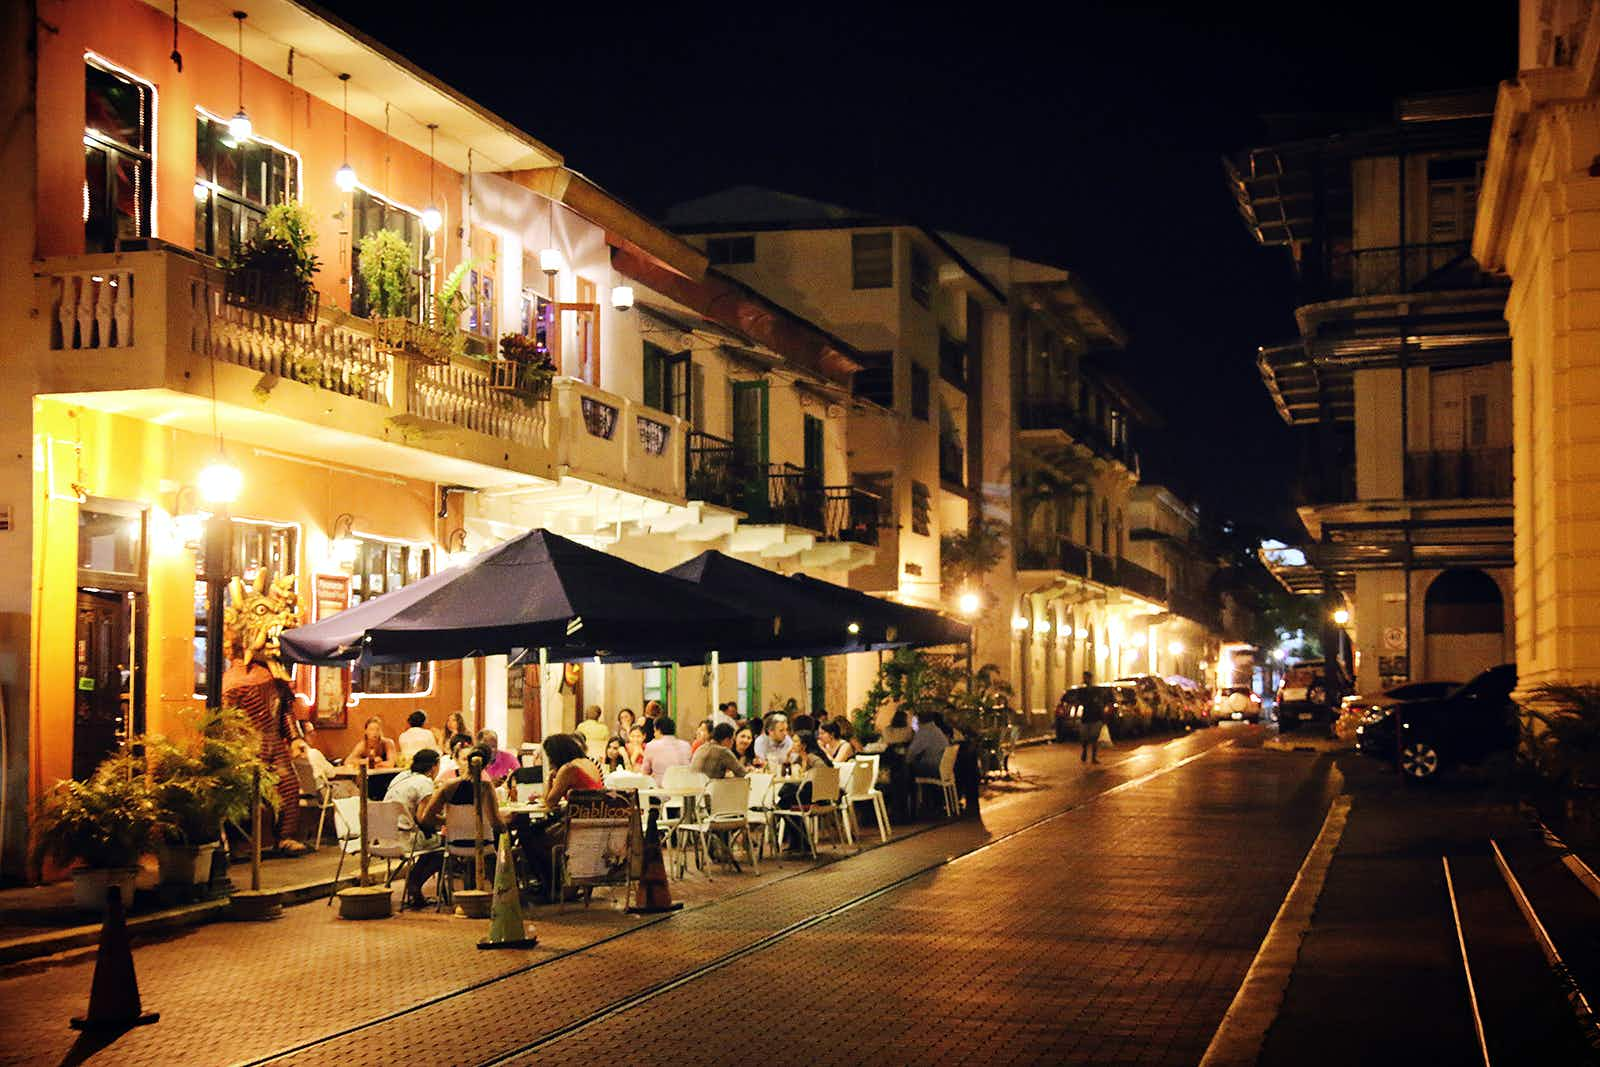 Casco Viejo is one of the top 10 experiences in Panama City's historic old quarter